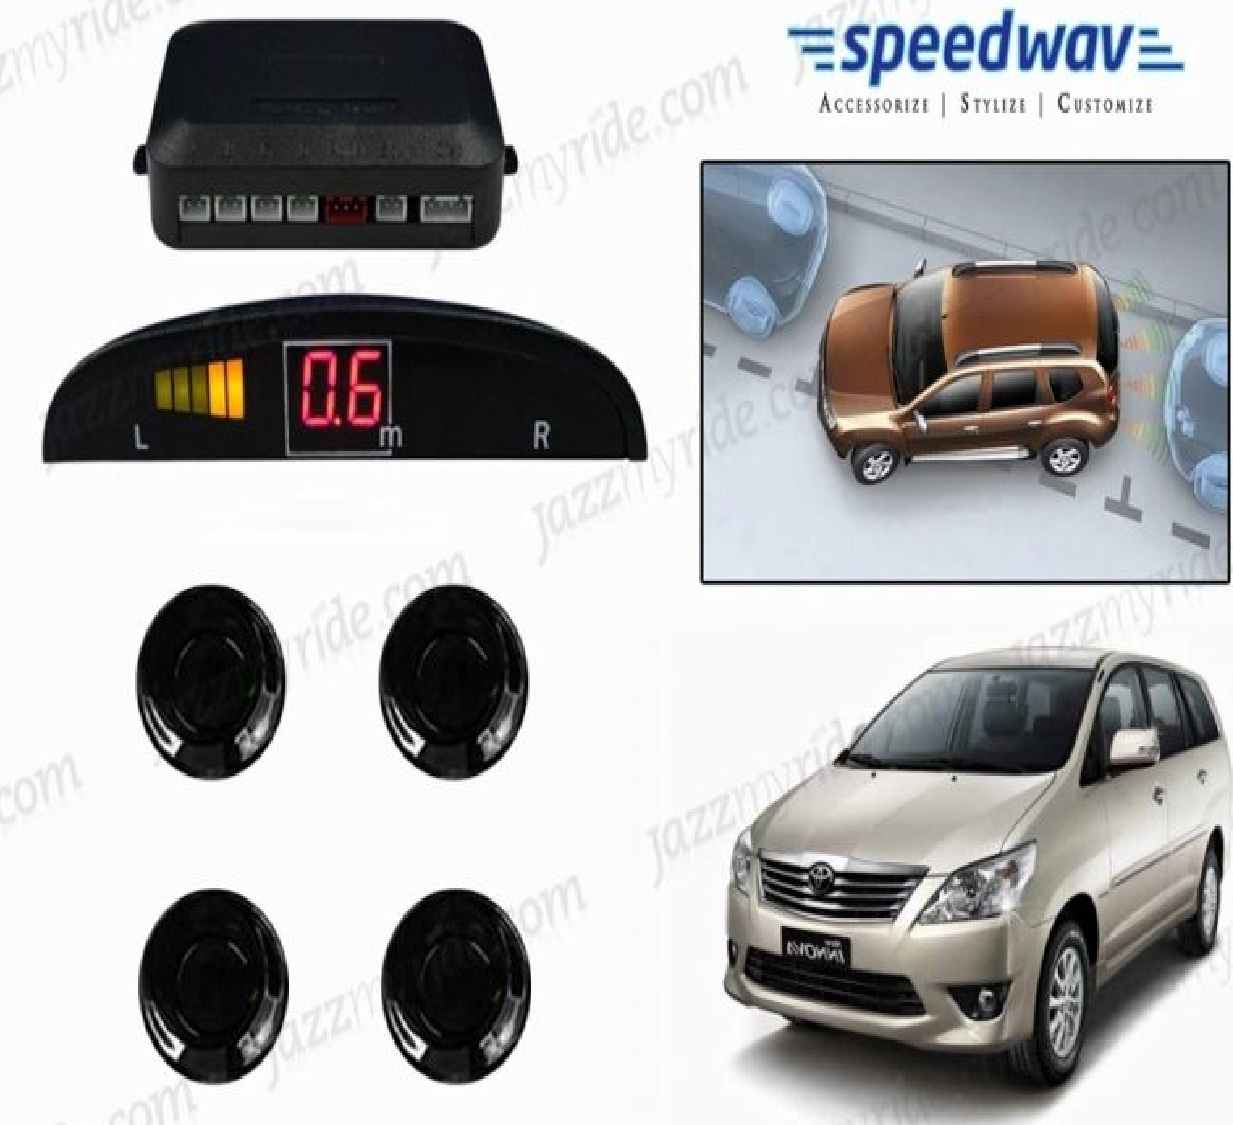 8 car accessories that make your toyota innova long drive ready best travel accessories for Travel gear car